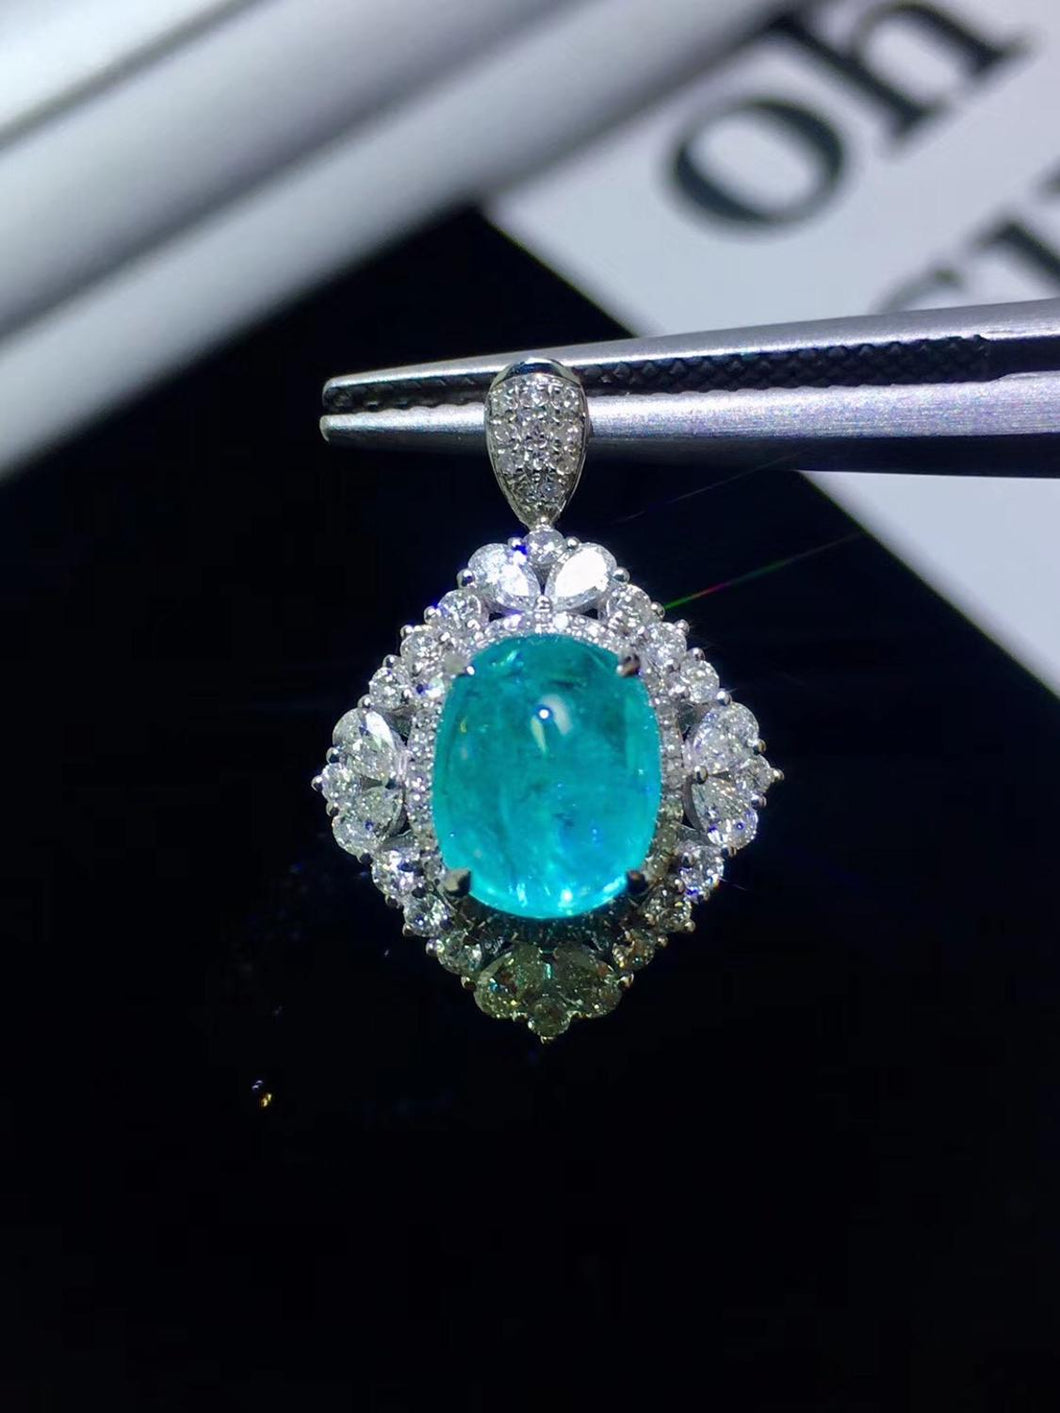 Paraiba Tourmaline Pendant Pure 18 K Gold Jewelry Real Paraiba Tourmaline Gemstone 2.1ct AGL Certificate Pendant Necklaces